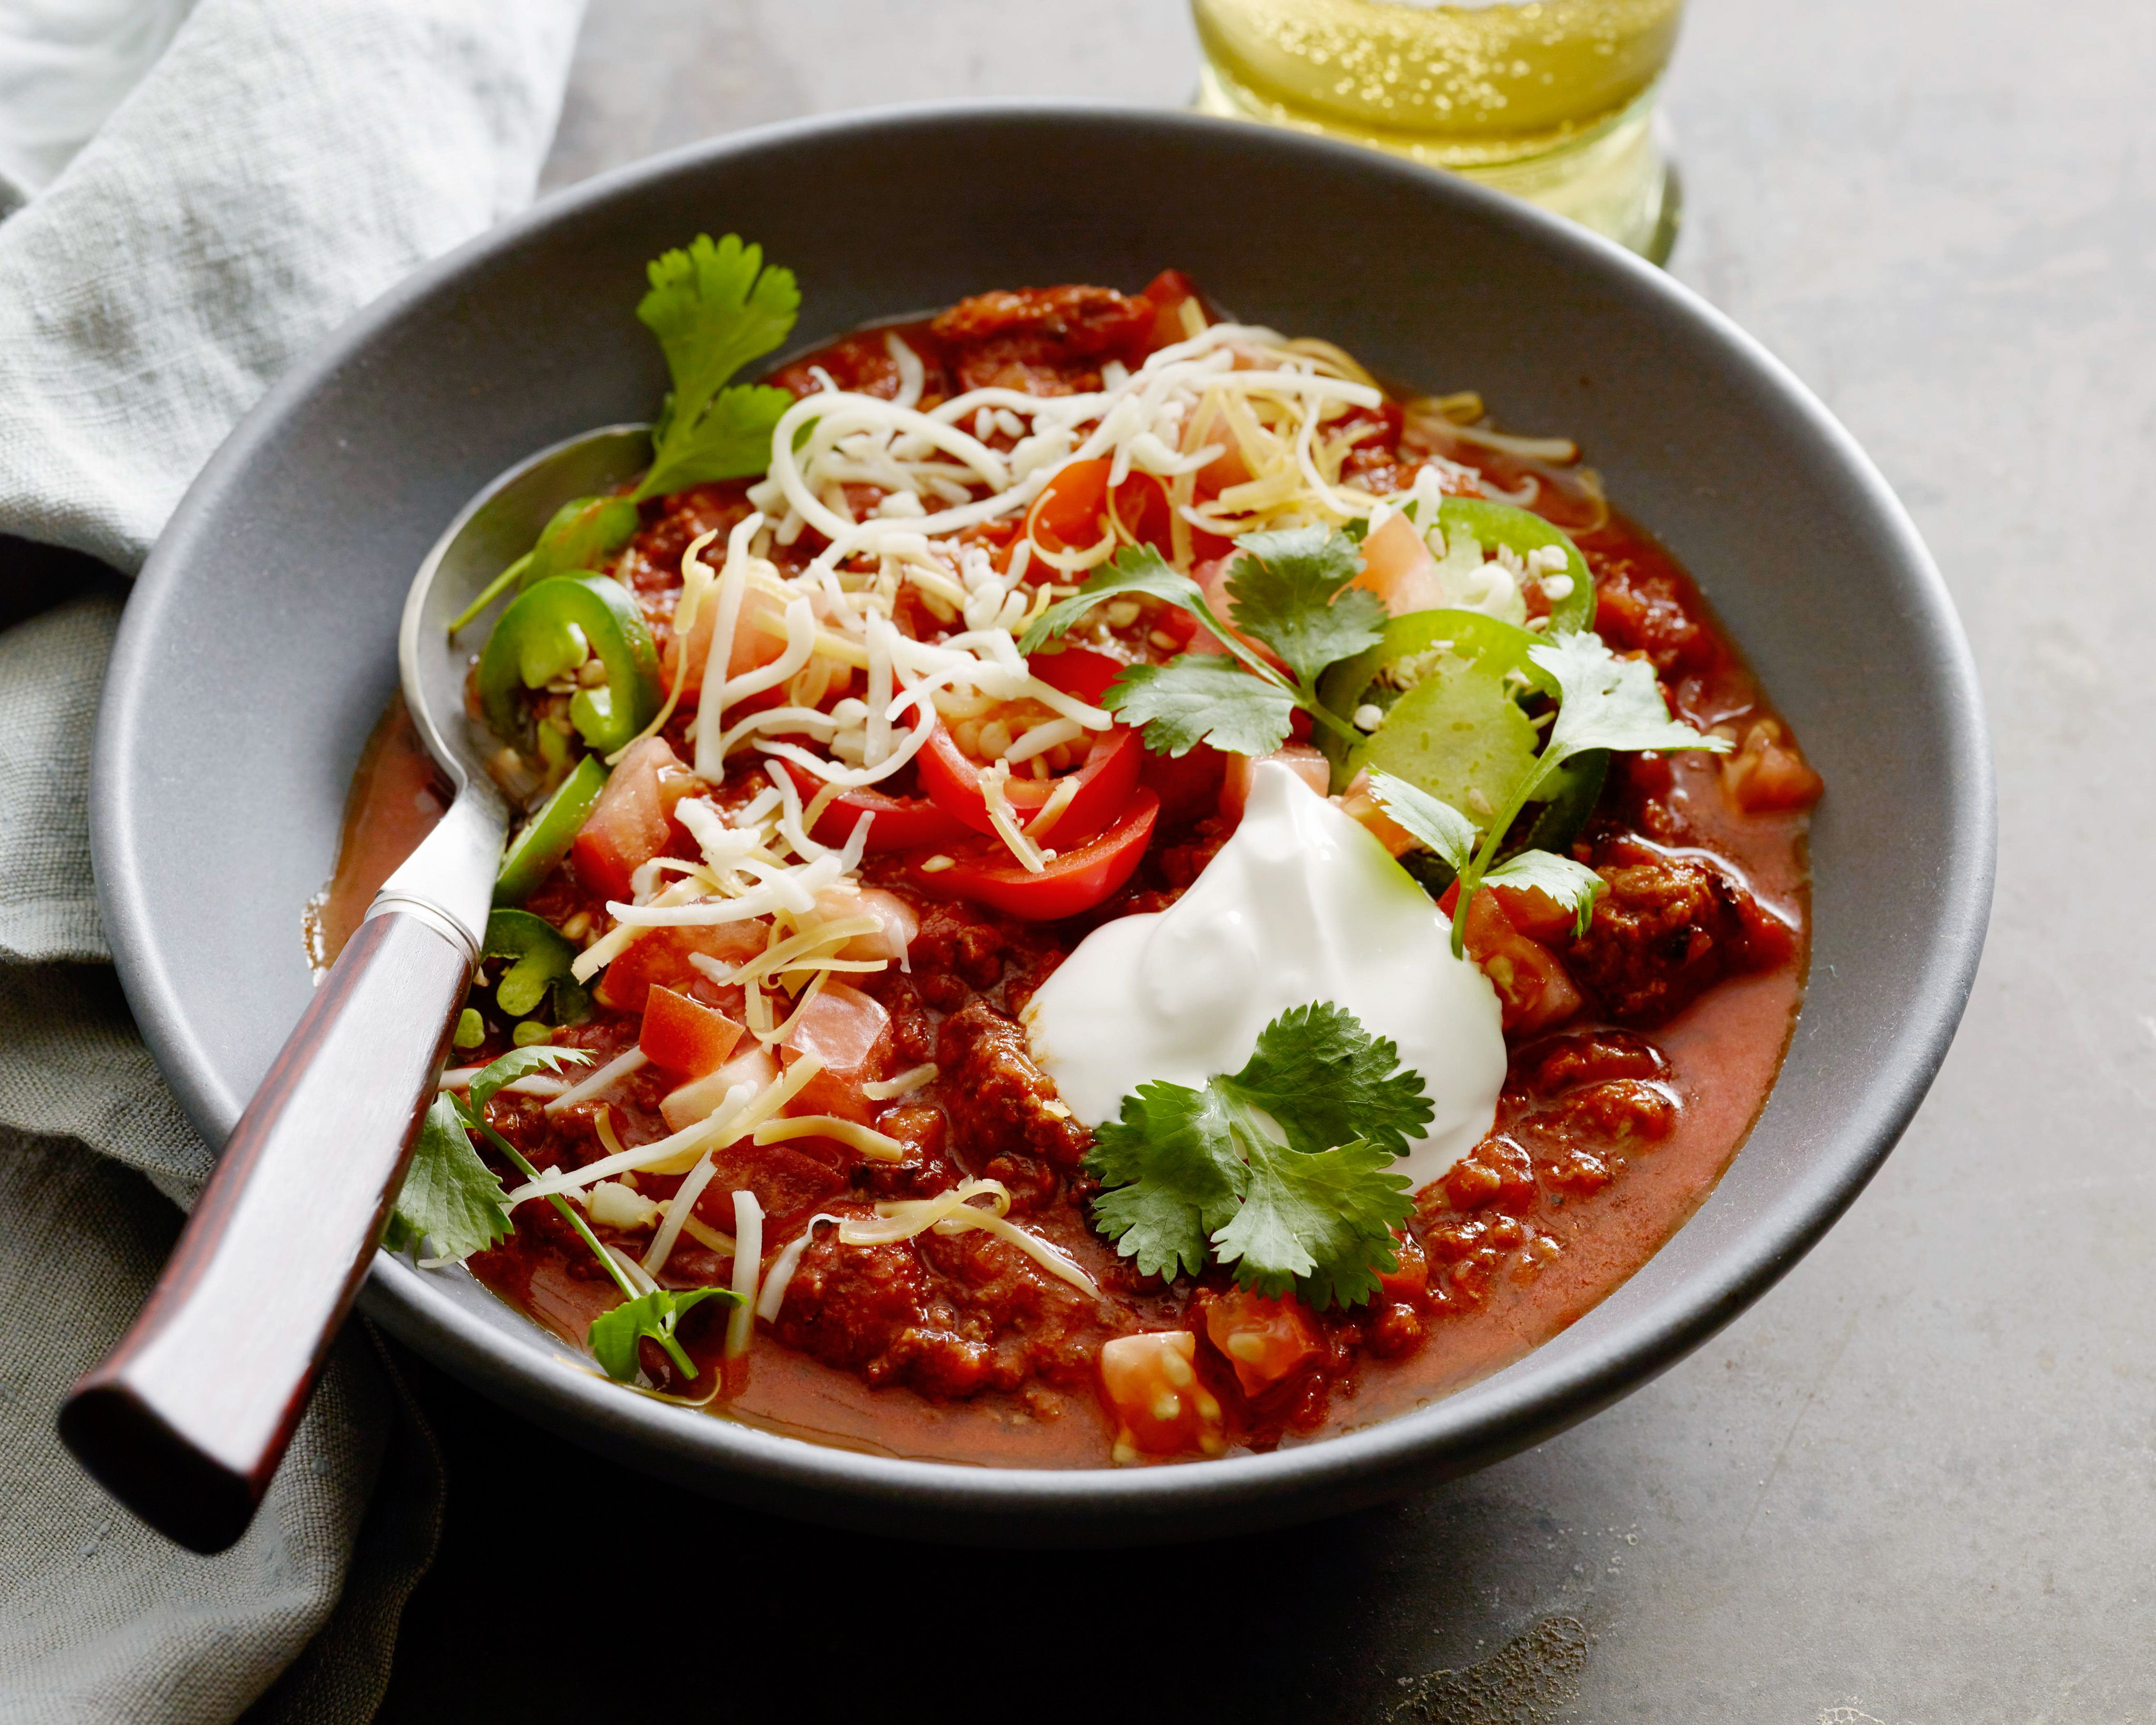 Game Day Chili Recipe Food Network Recipes Game Day Chili Recipe Recipes